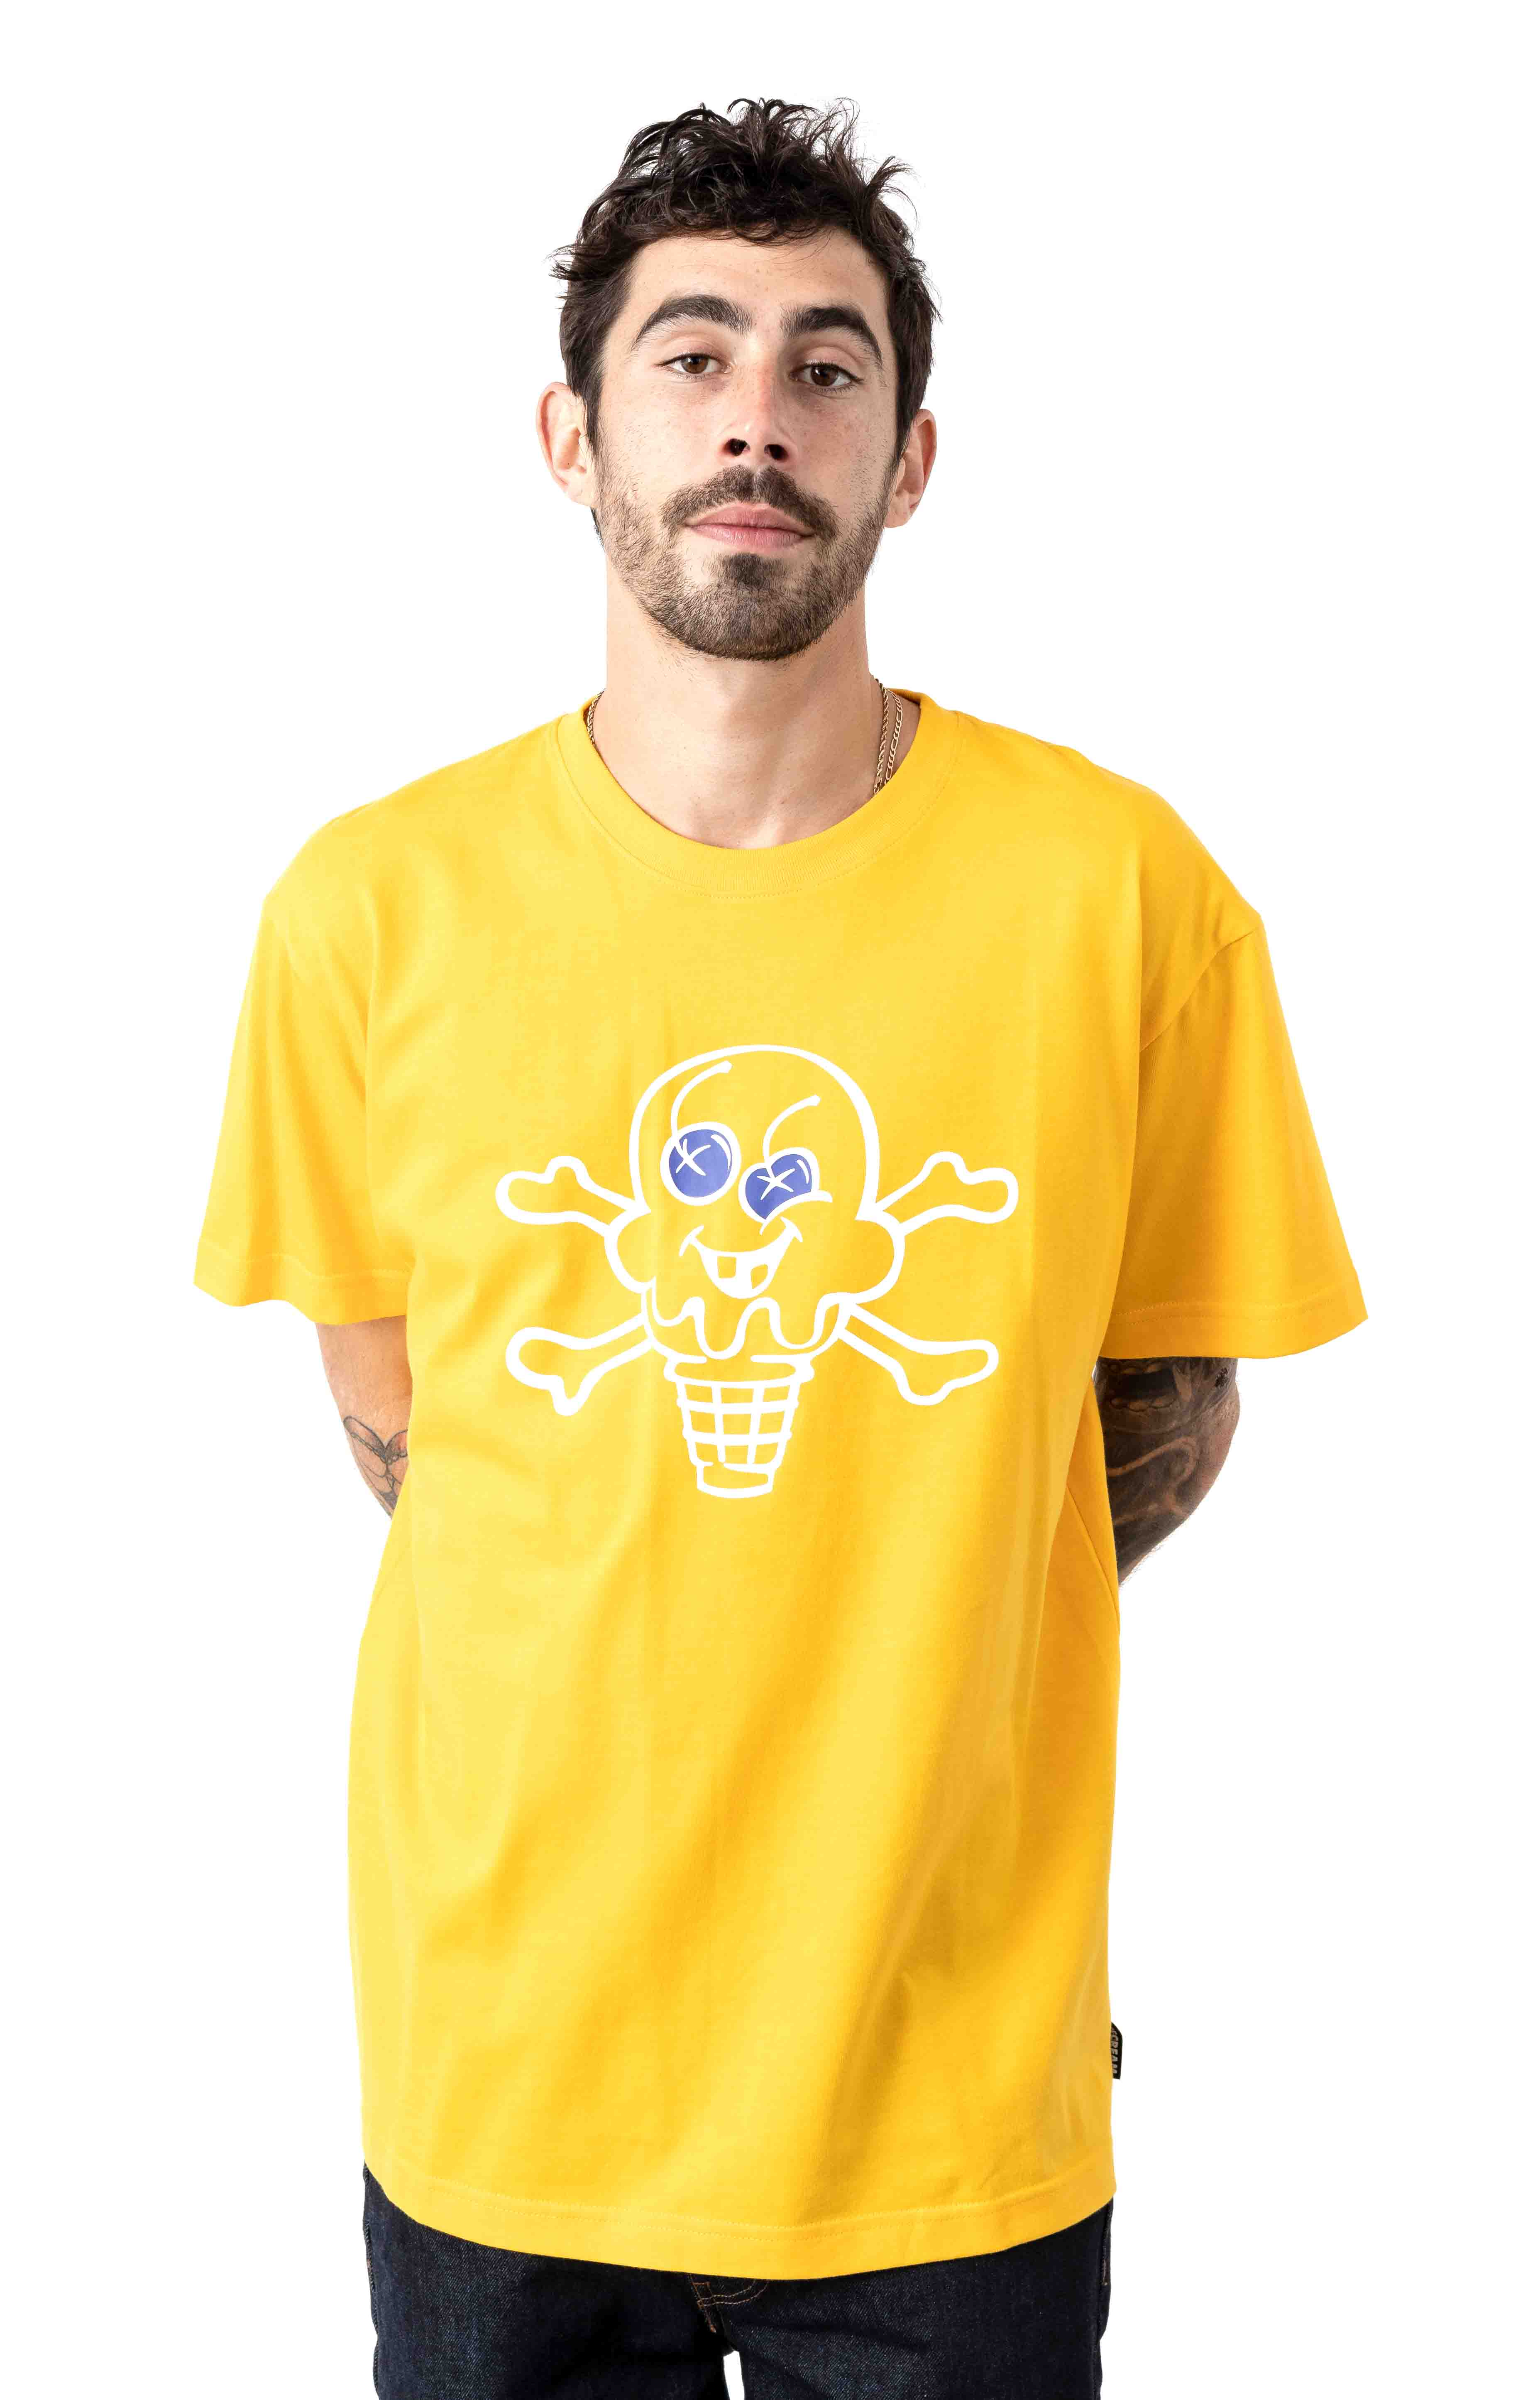 Cones And Bones T-Shirt - Spectra Yellow